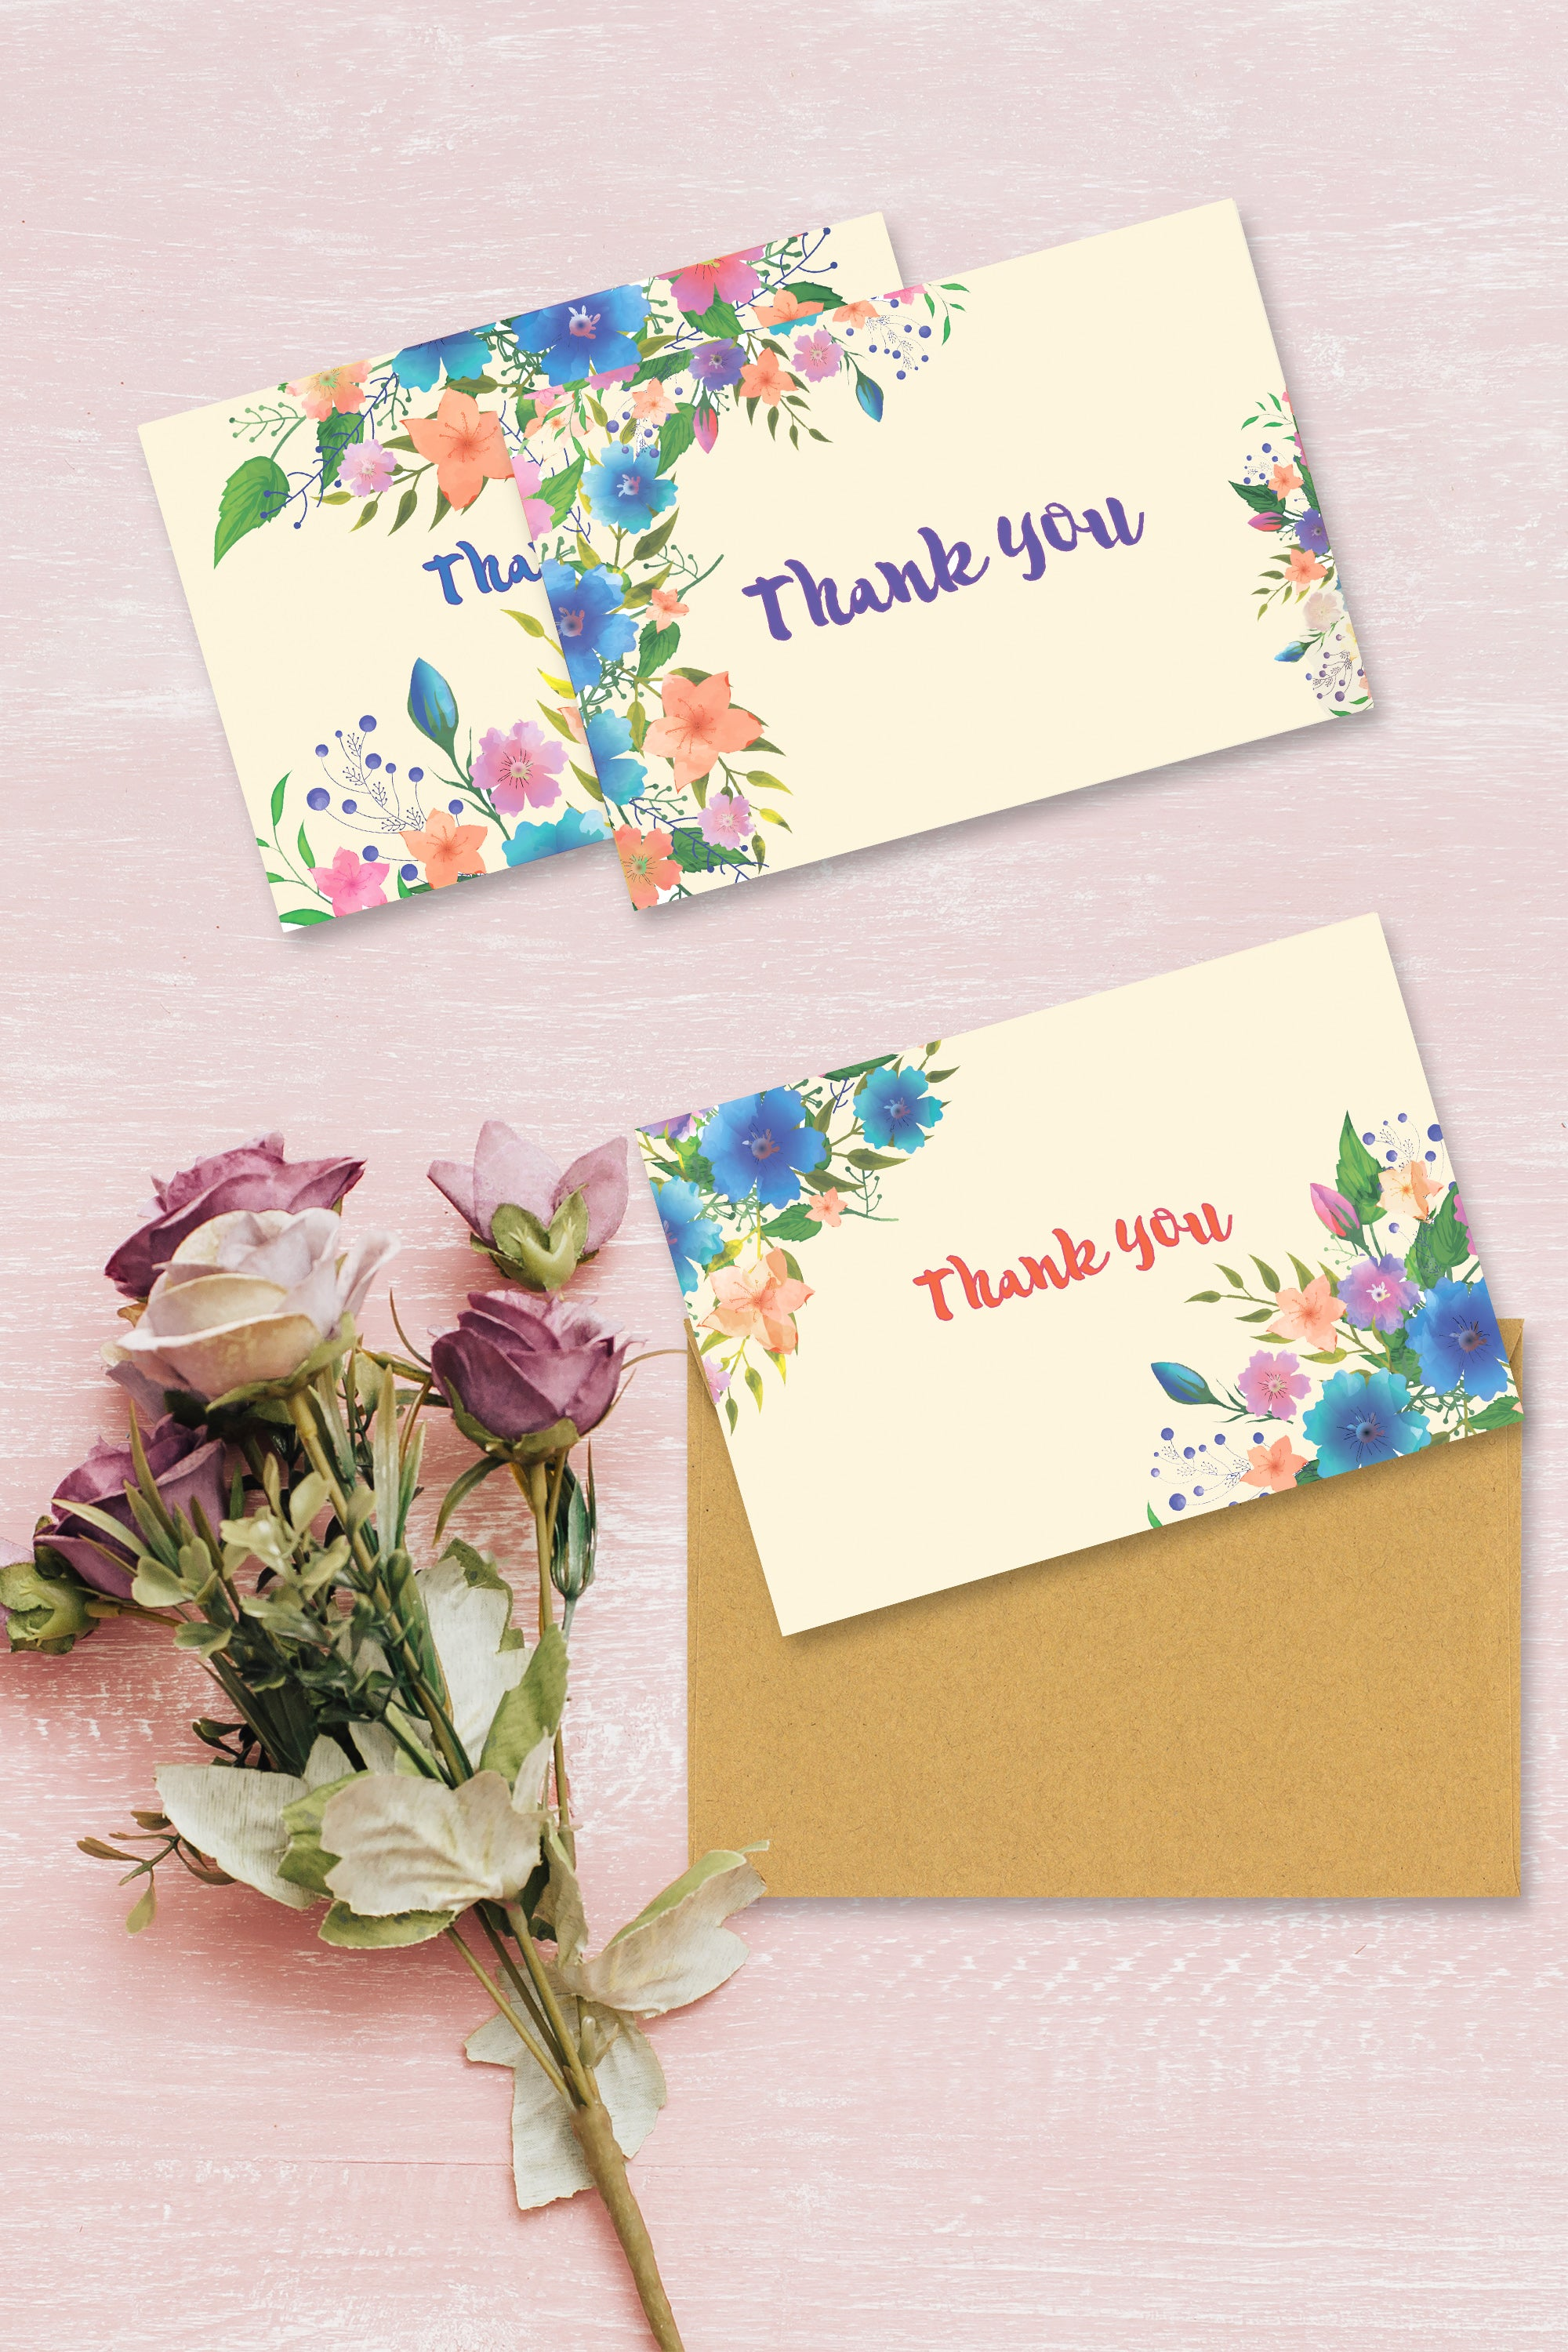 Thank You Cards Bulk, 48 Baby Shower Thank You Cards, 6 Watercolor Floral Rustic Vintage Cards Designs and Kraft Envelopes for Business Graduation Bridal Wedding Greeting Events by PETANI